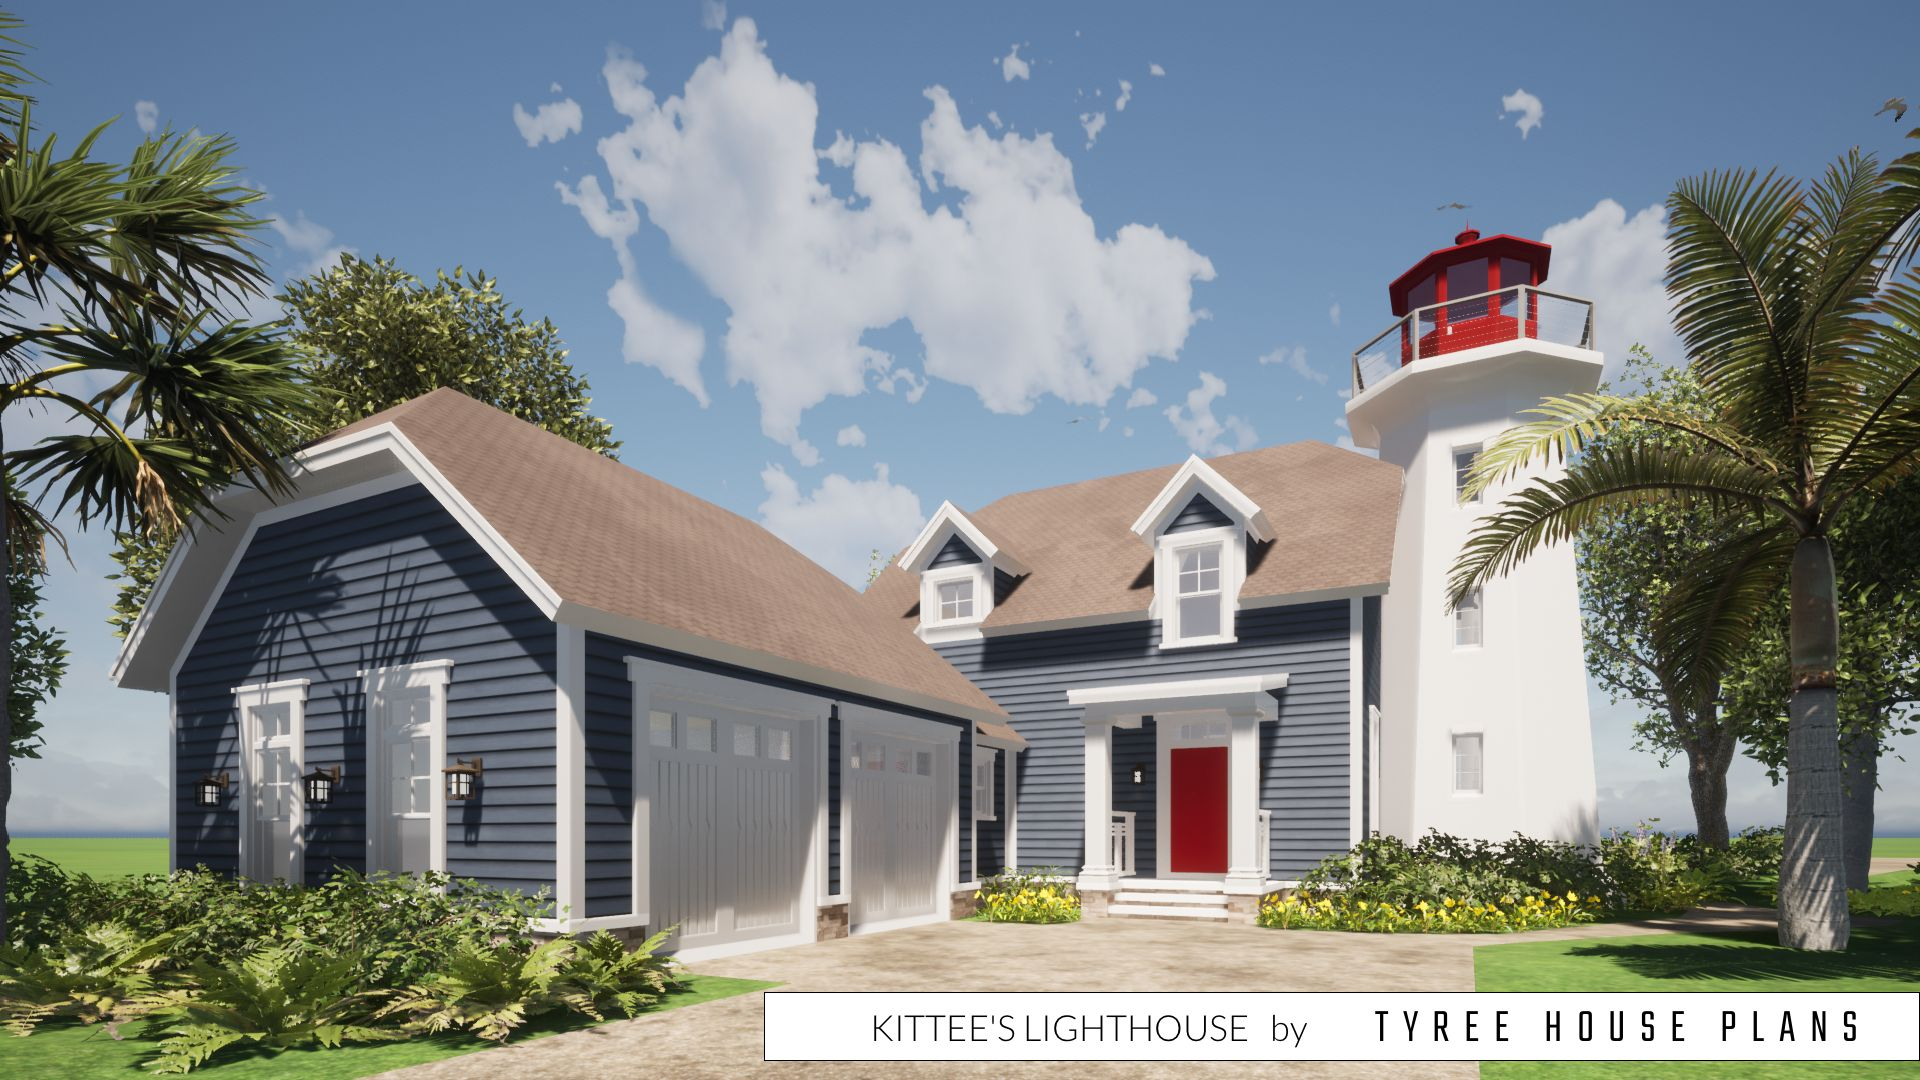 3 Bedroom House With Attached Lighthouse Tyree House Plans In 2020 House Plans Beach House Plans House